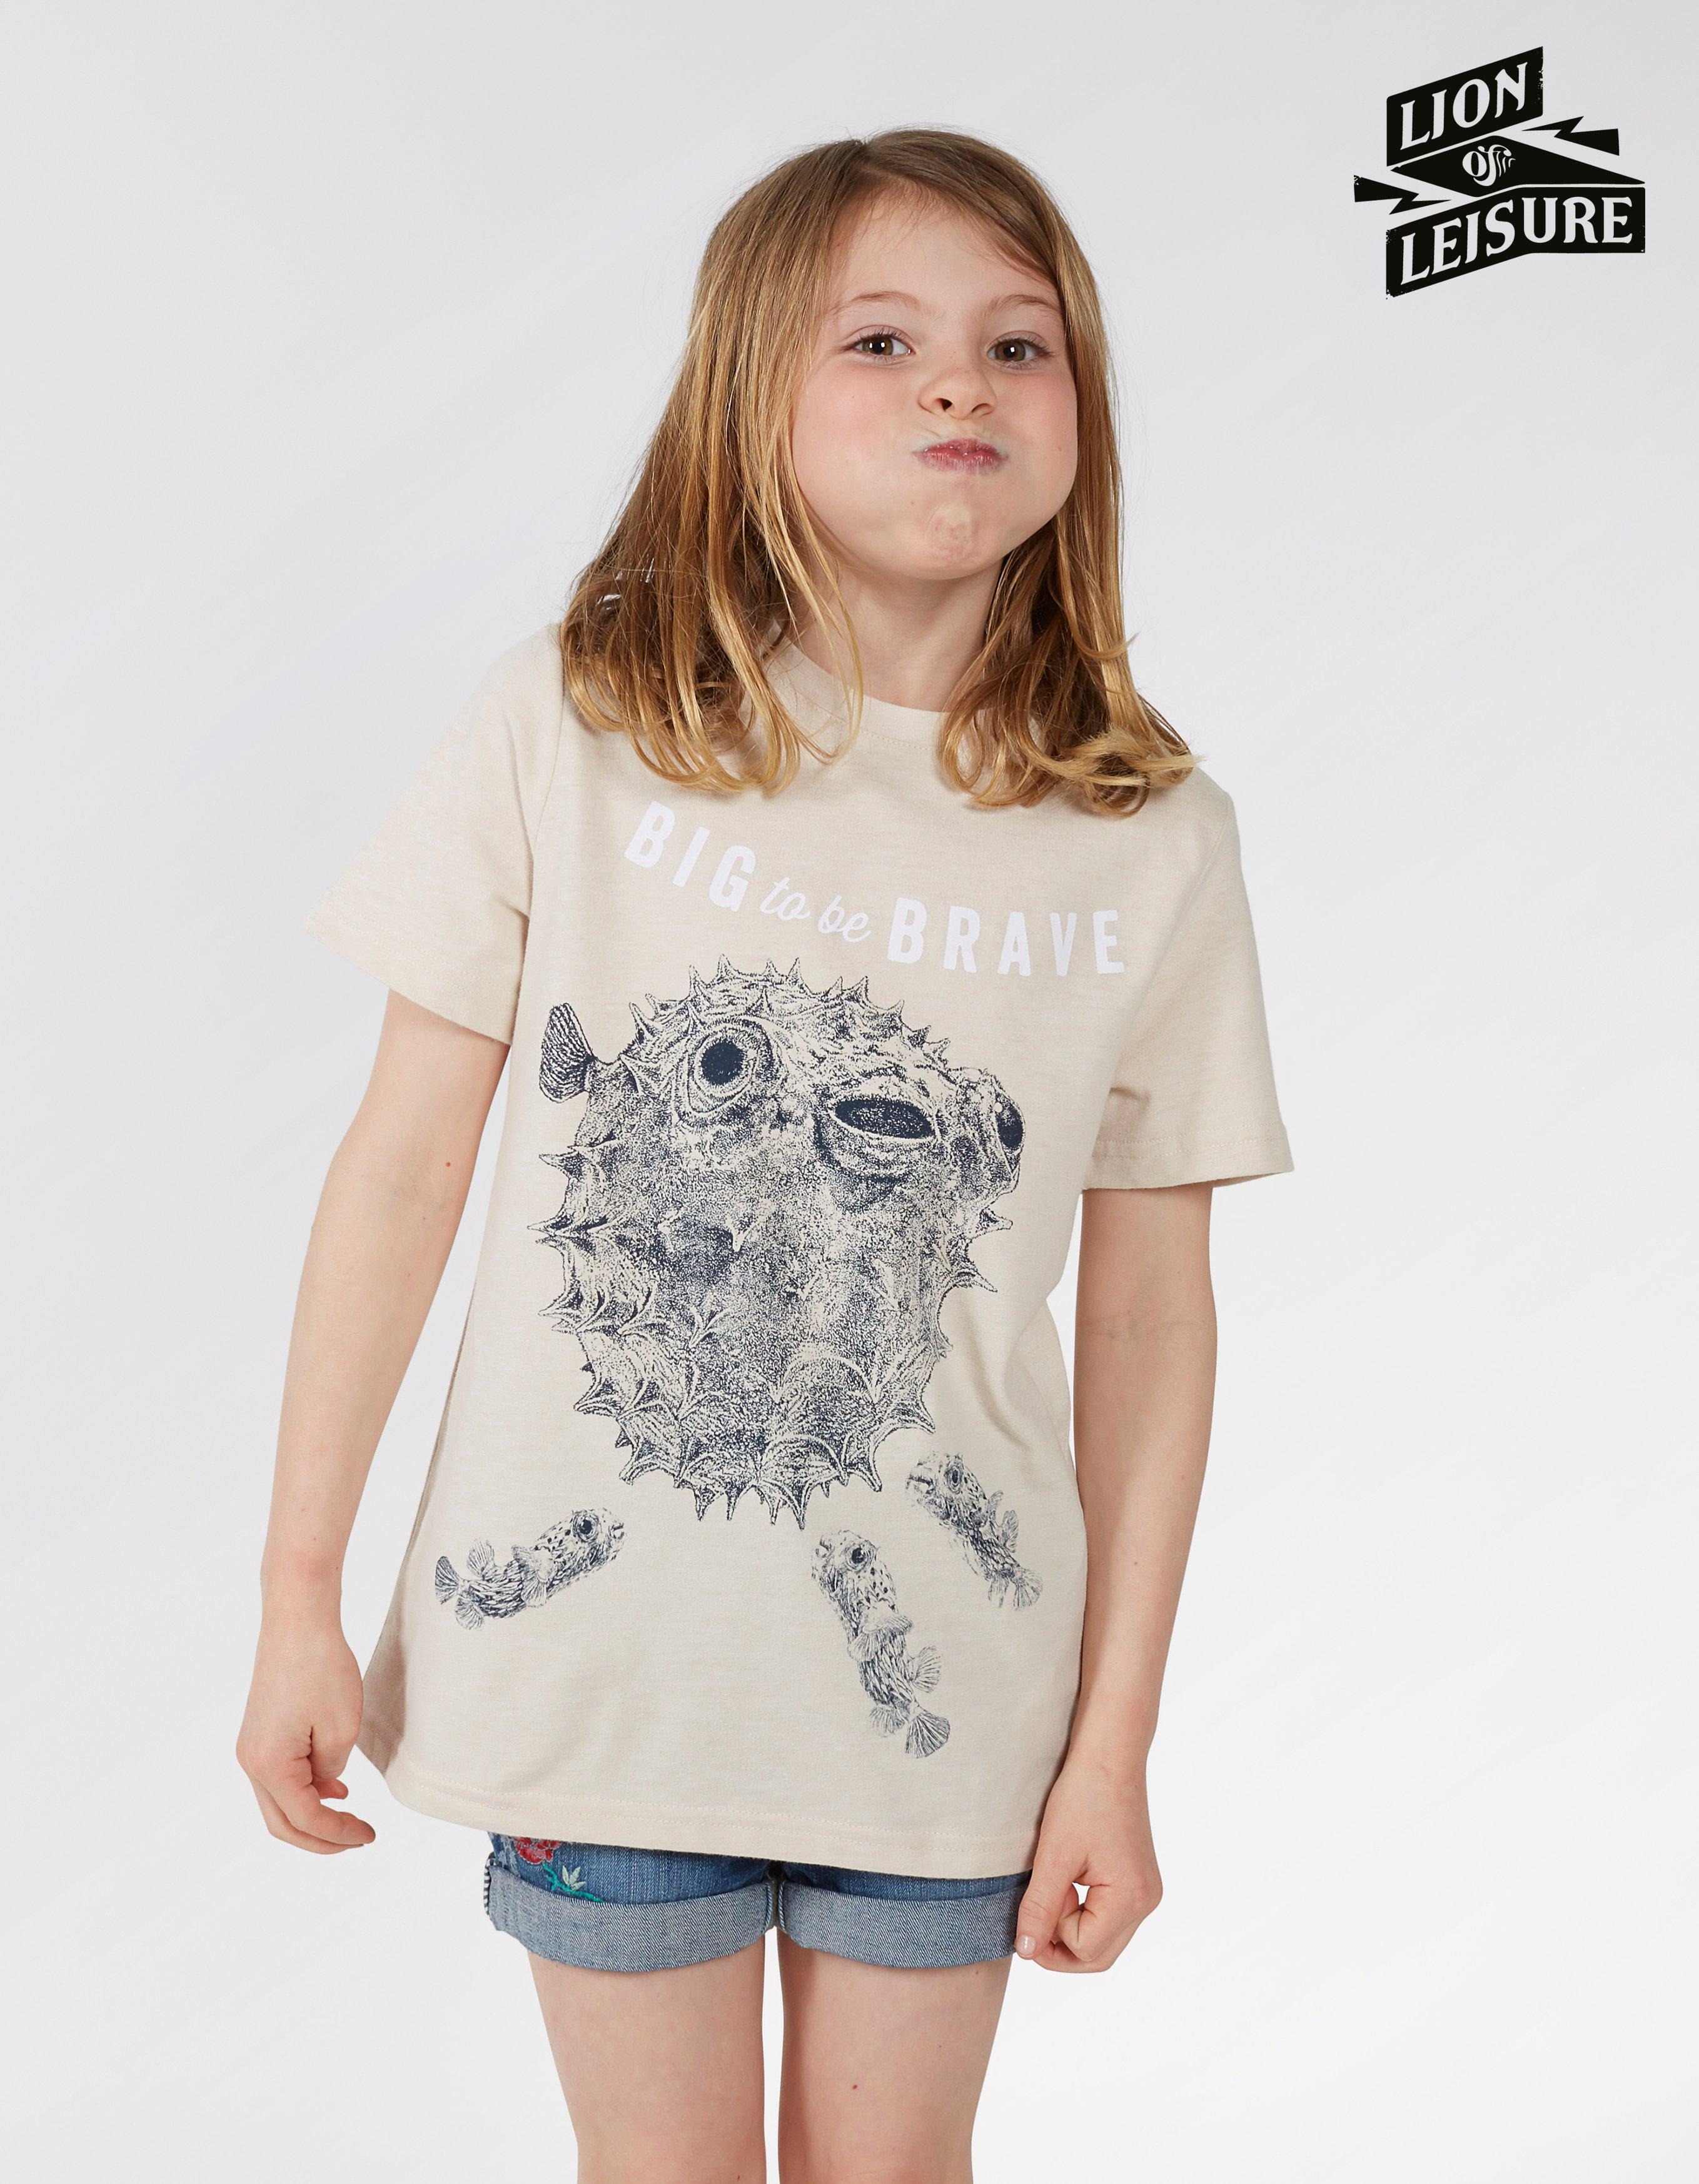 Lion of Leisure Blowfish T-Shirt